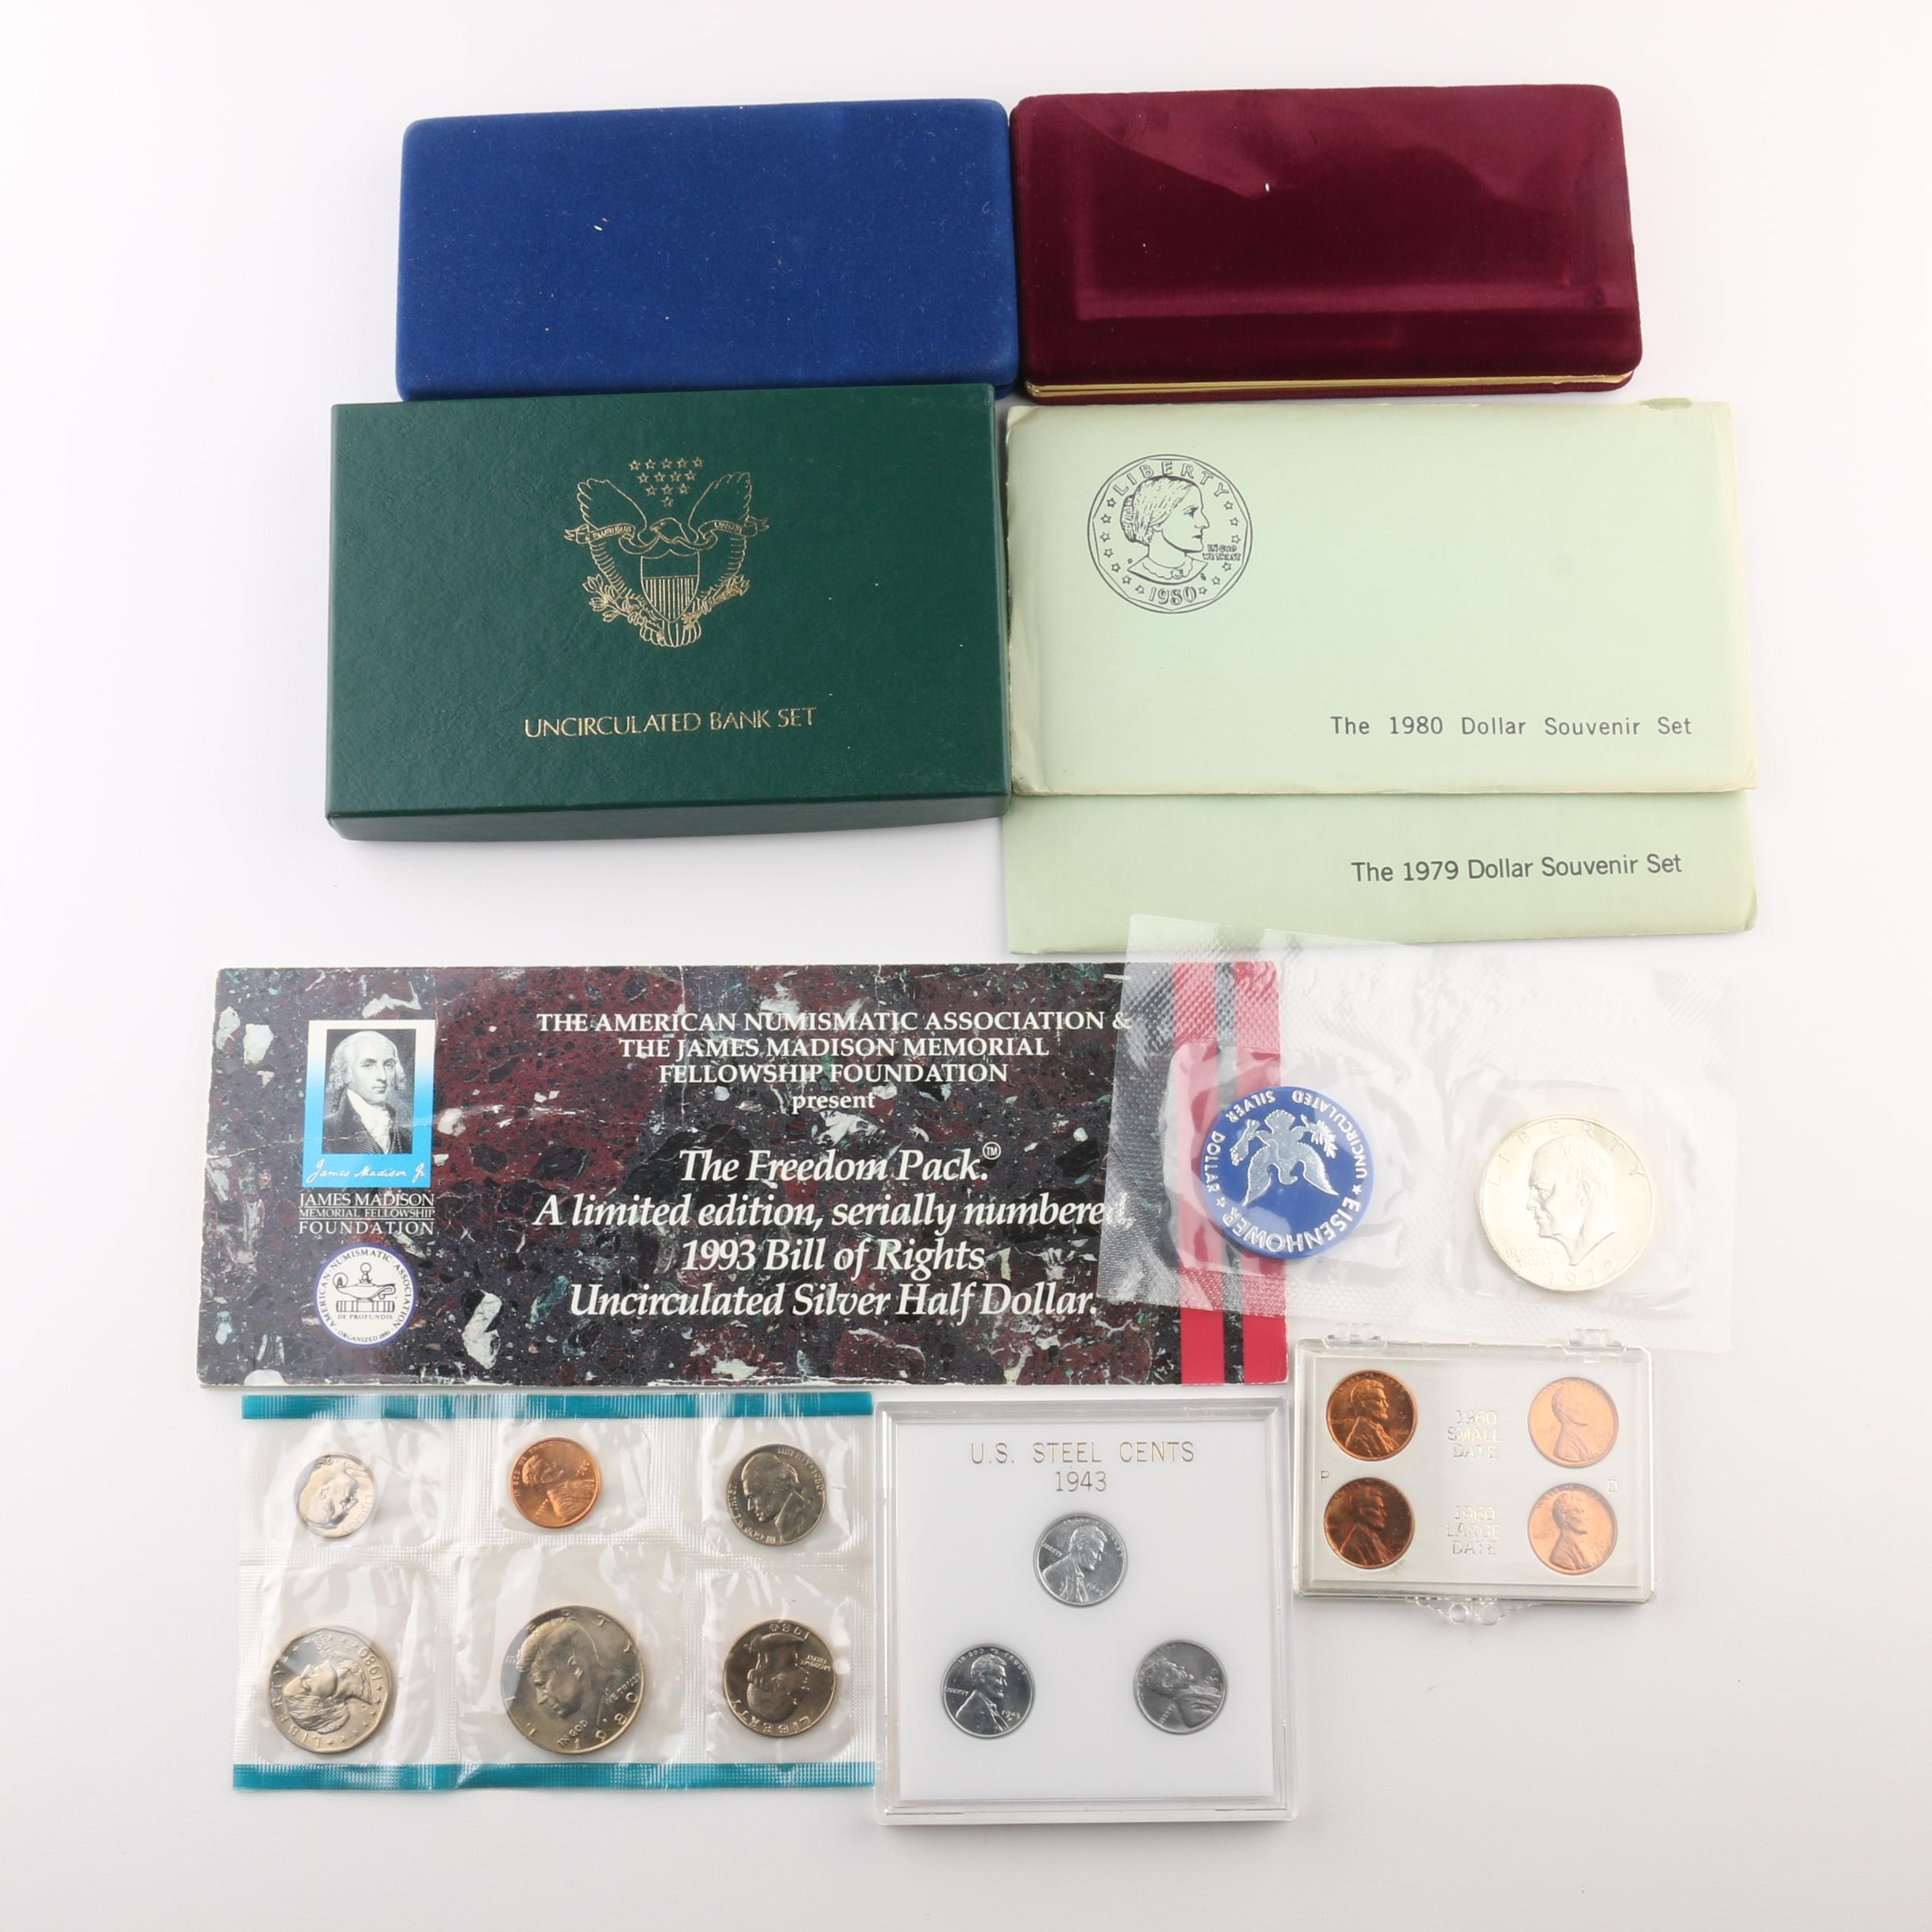 Assortment of U.S. Coin Sets and Commemoratives